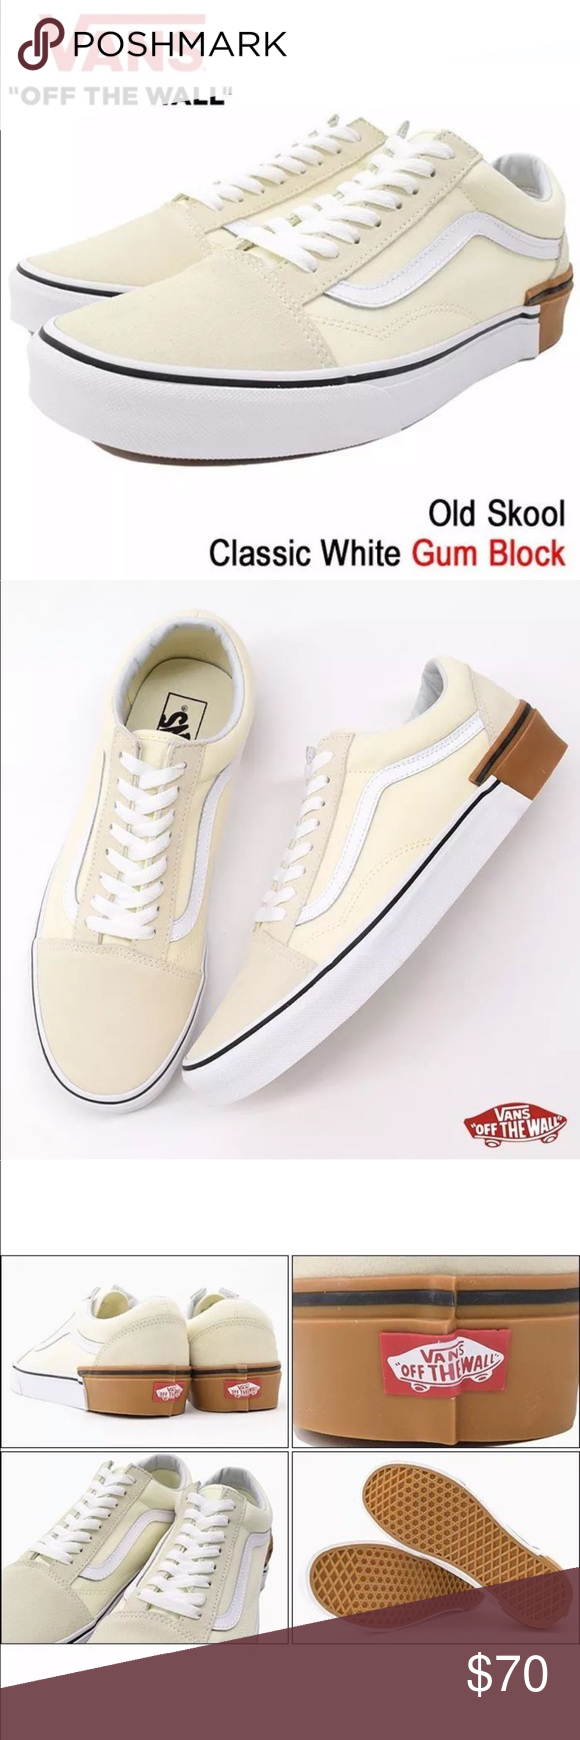 29ecc4395a Vans Men s Old Skool Classic White Gum Block NEW AUTHENTIC Vans Old Skool  Skate Shoes SIZE MEN S 12 COLOR  GUM BLOCK CLASSIC WHITE Timeless Skate  Style A ...